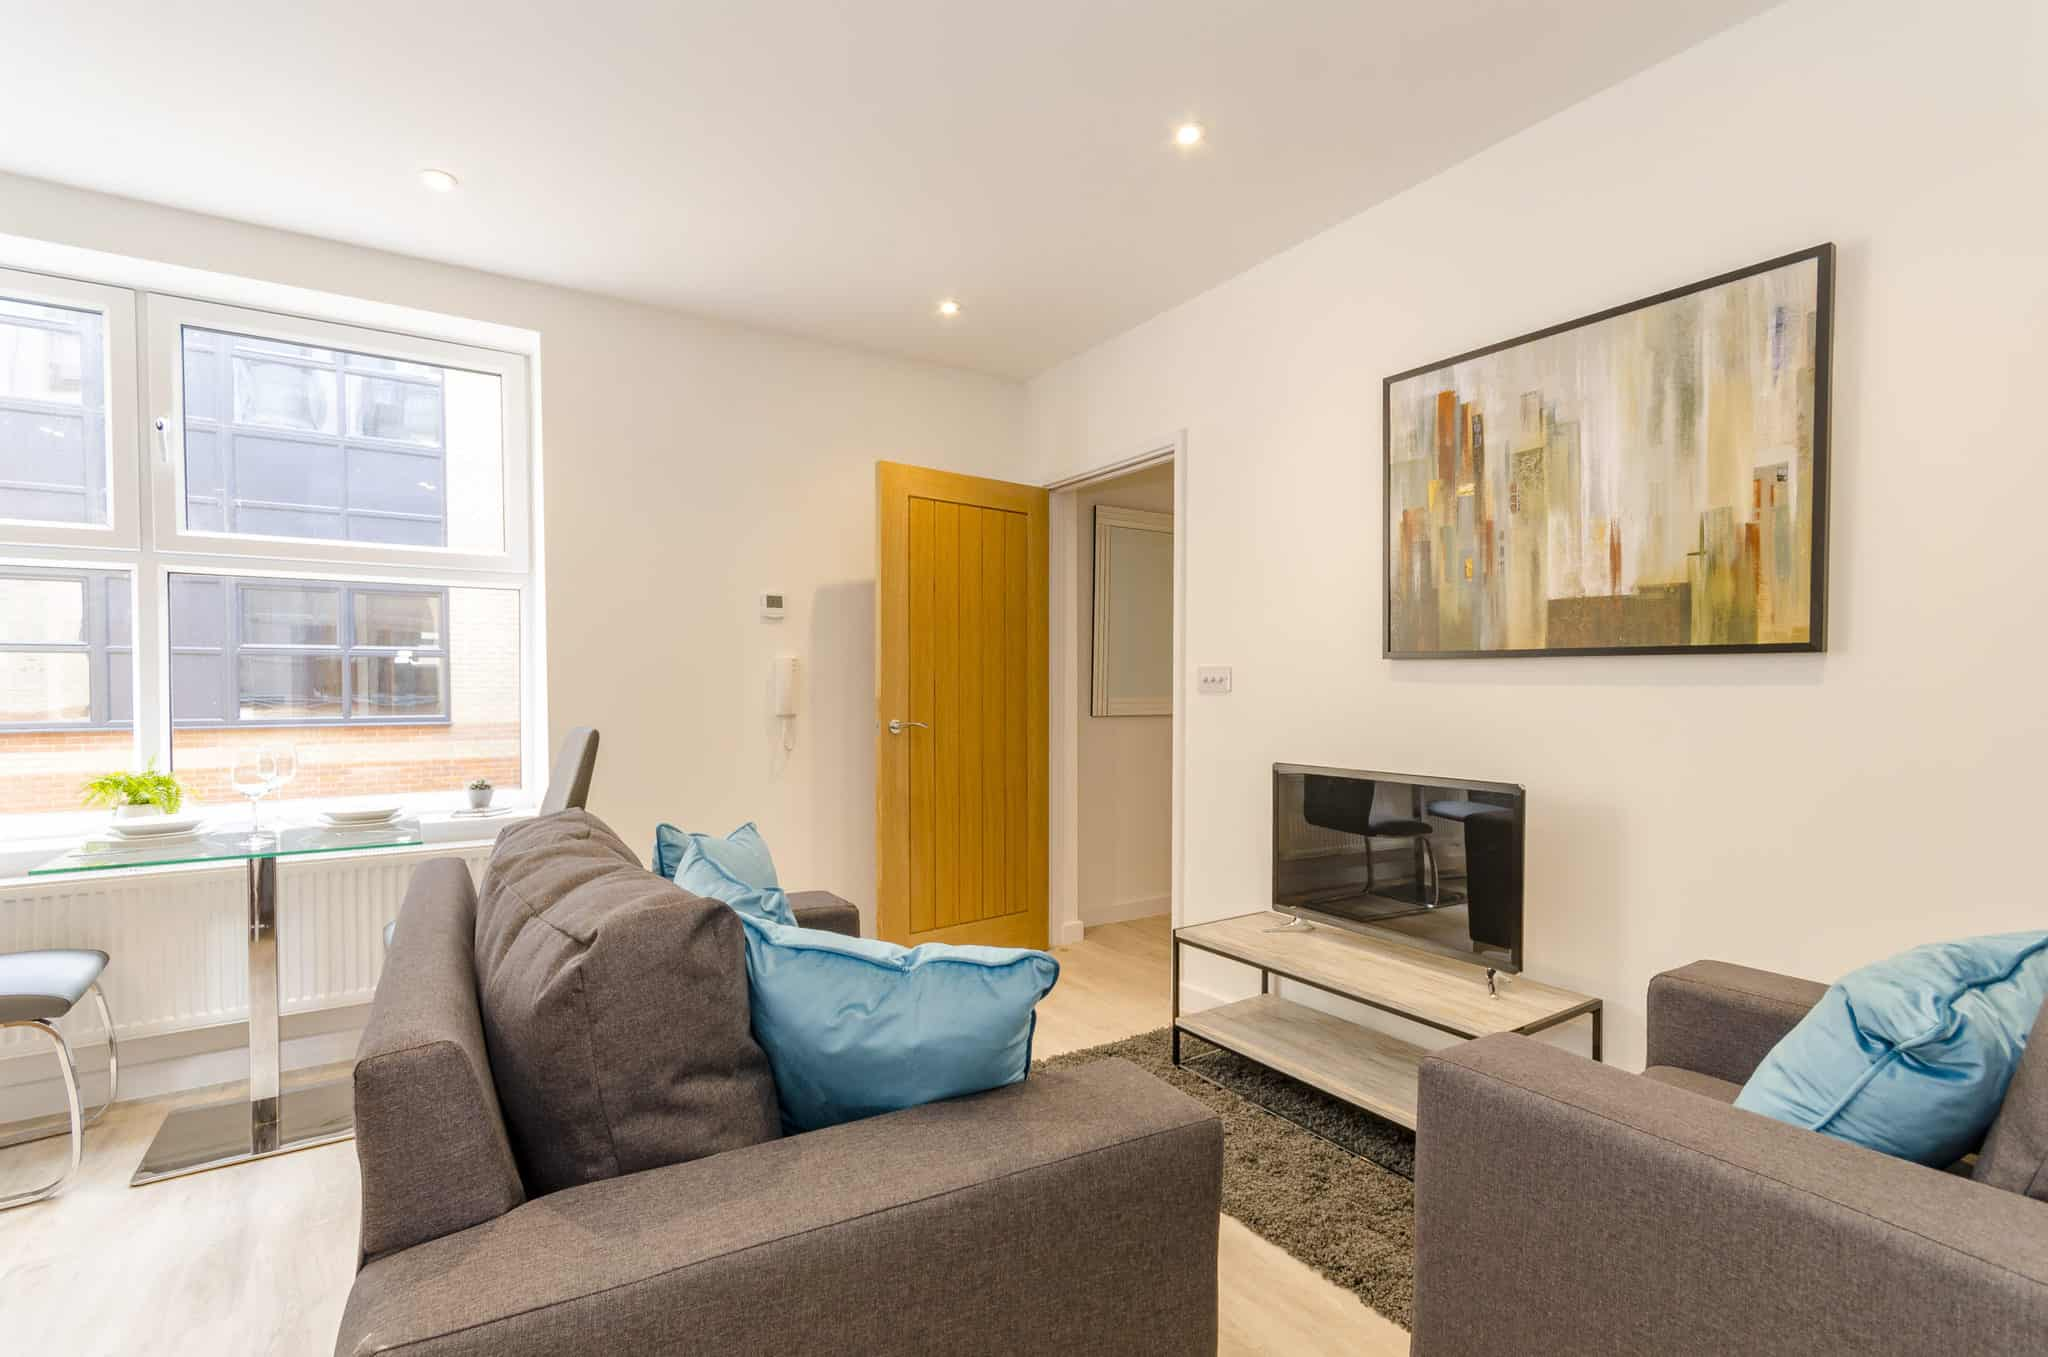 Saxon Gate Interior Commercial to Residential Property Conversion Apartment